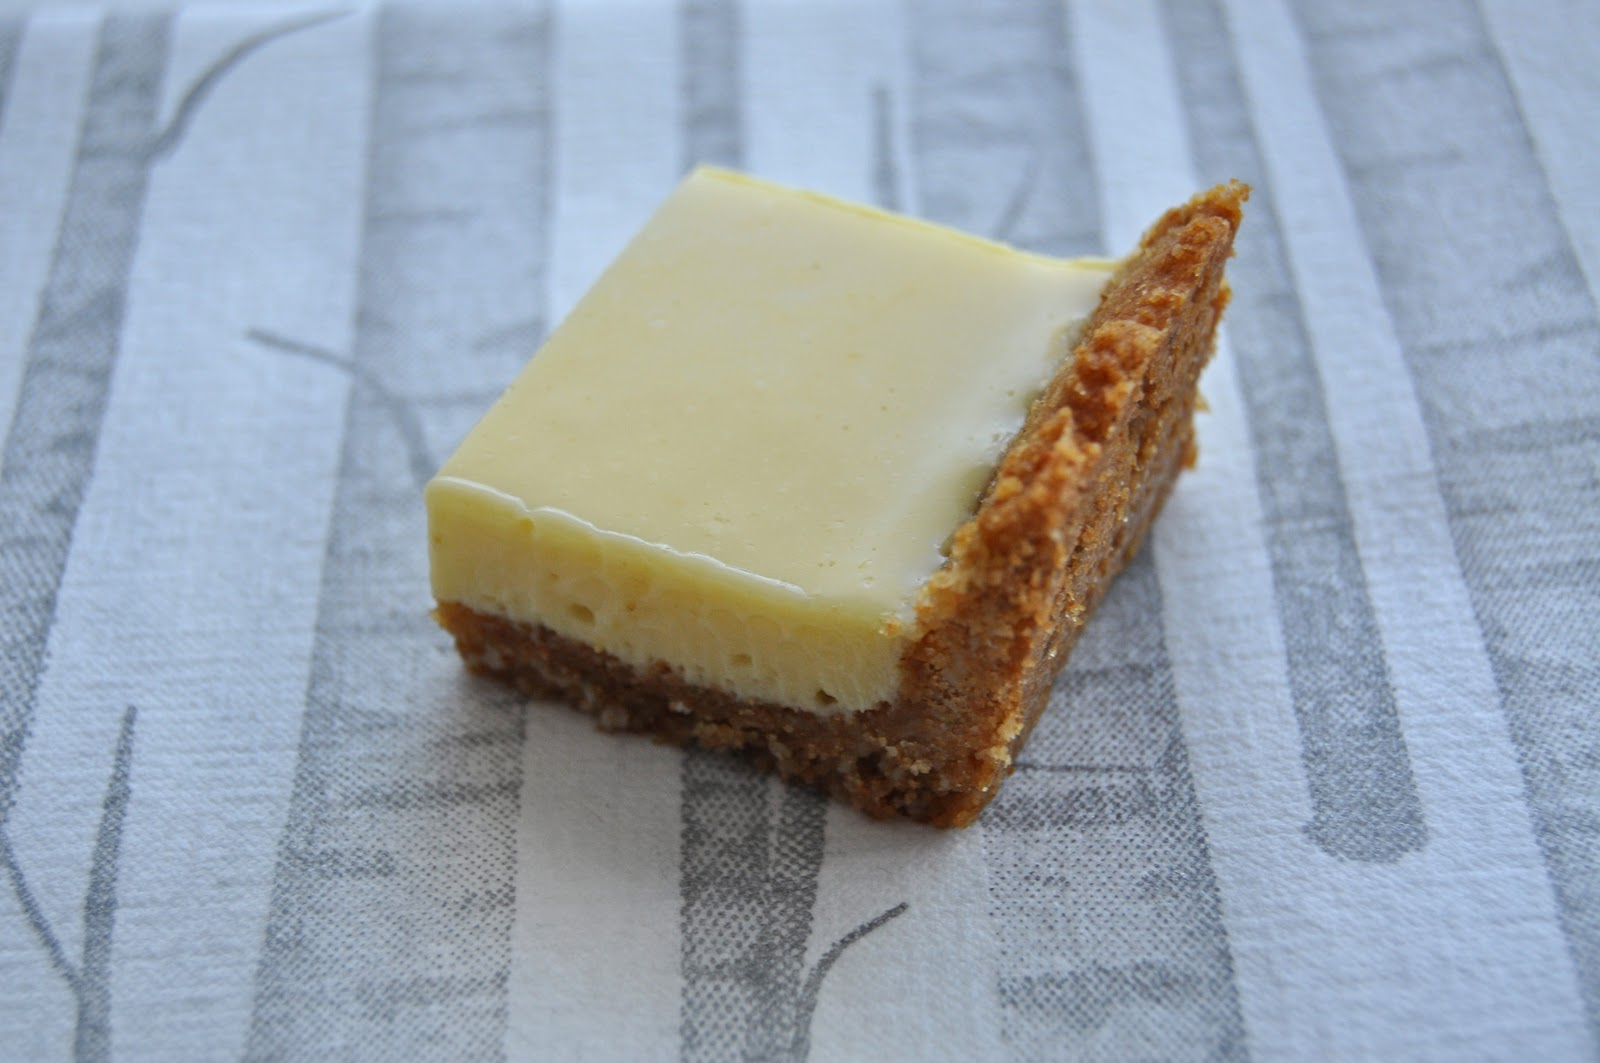 Impeccable Taste: Lime Squares with Macadamia Nut Crust